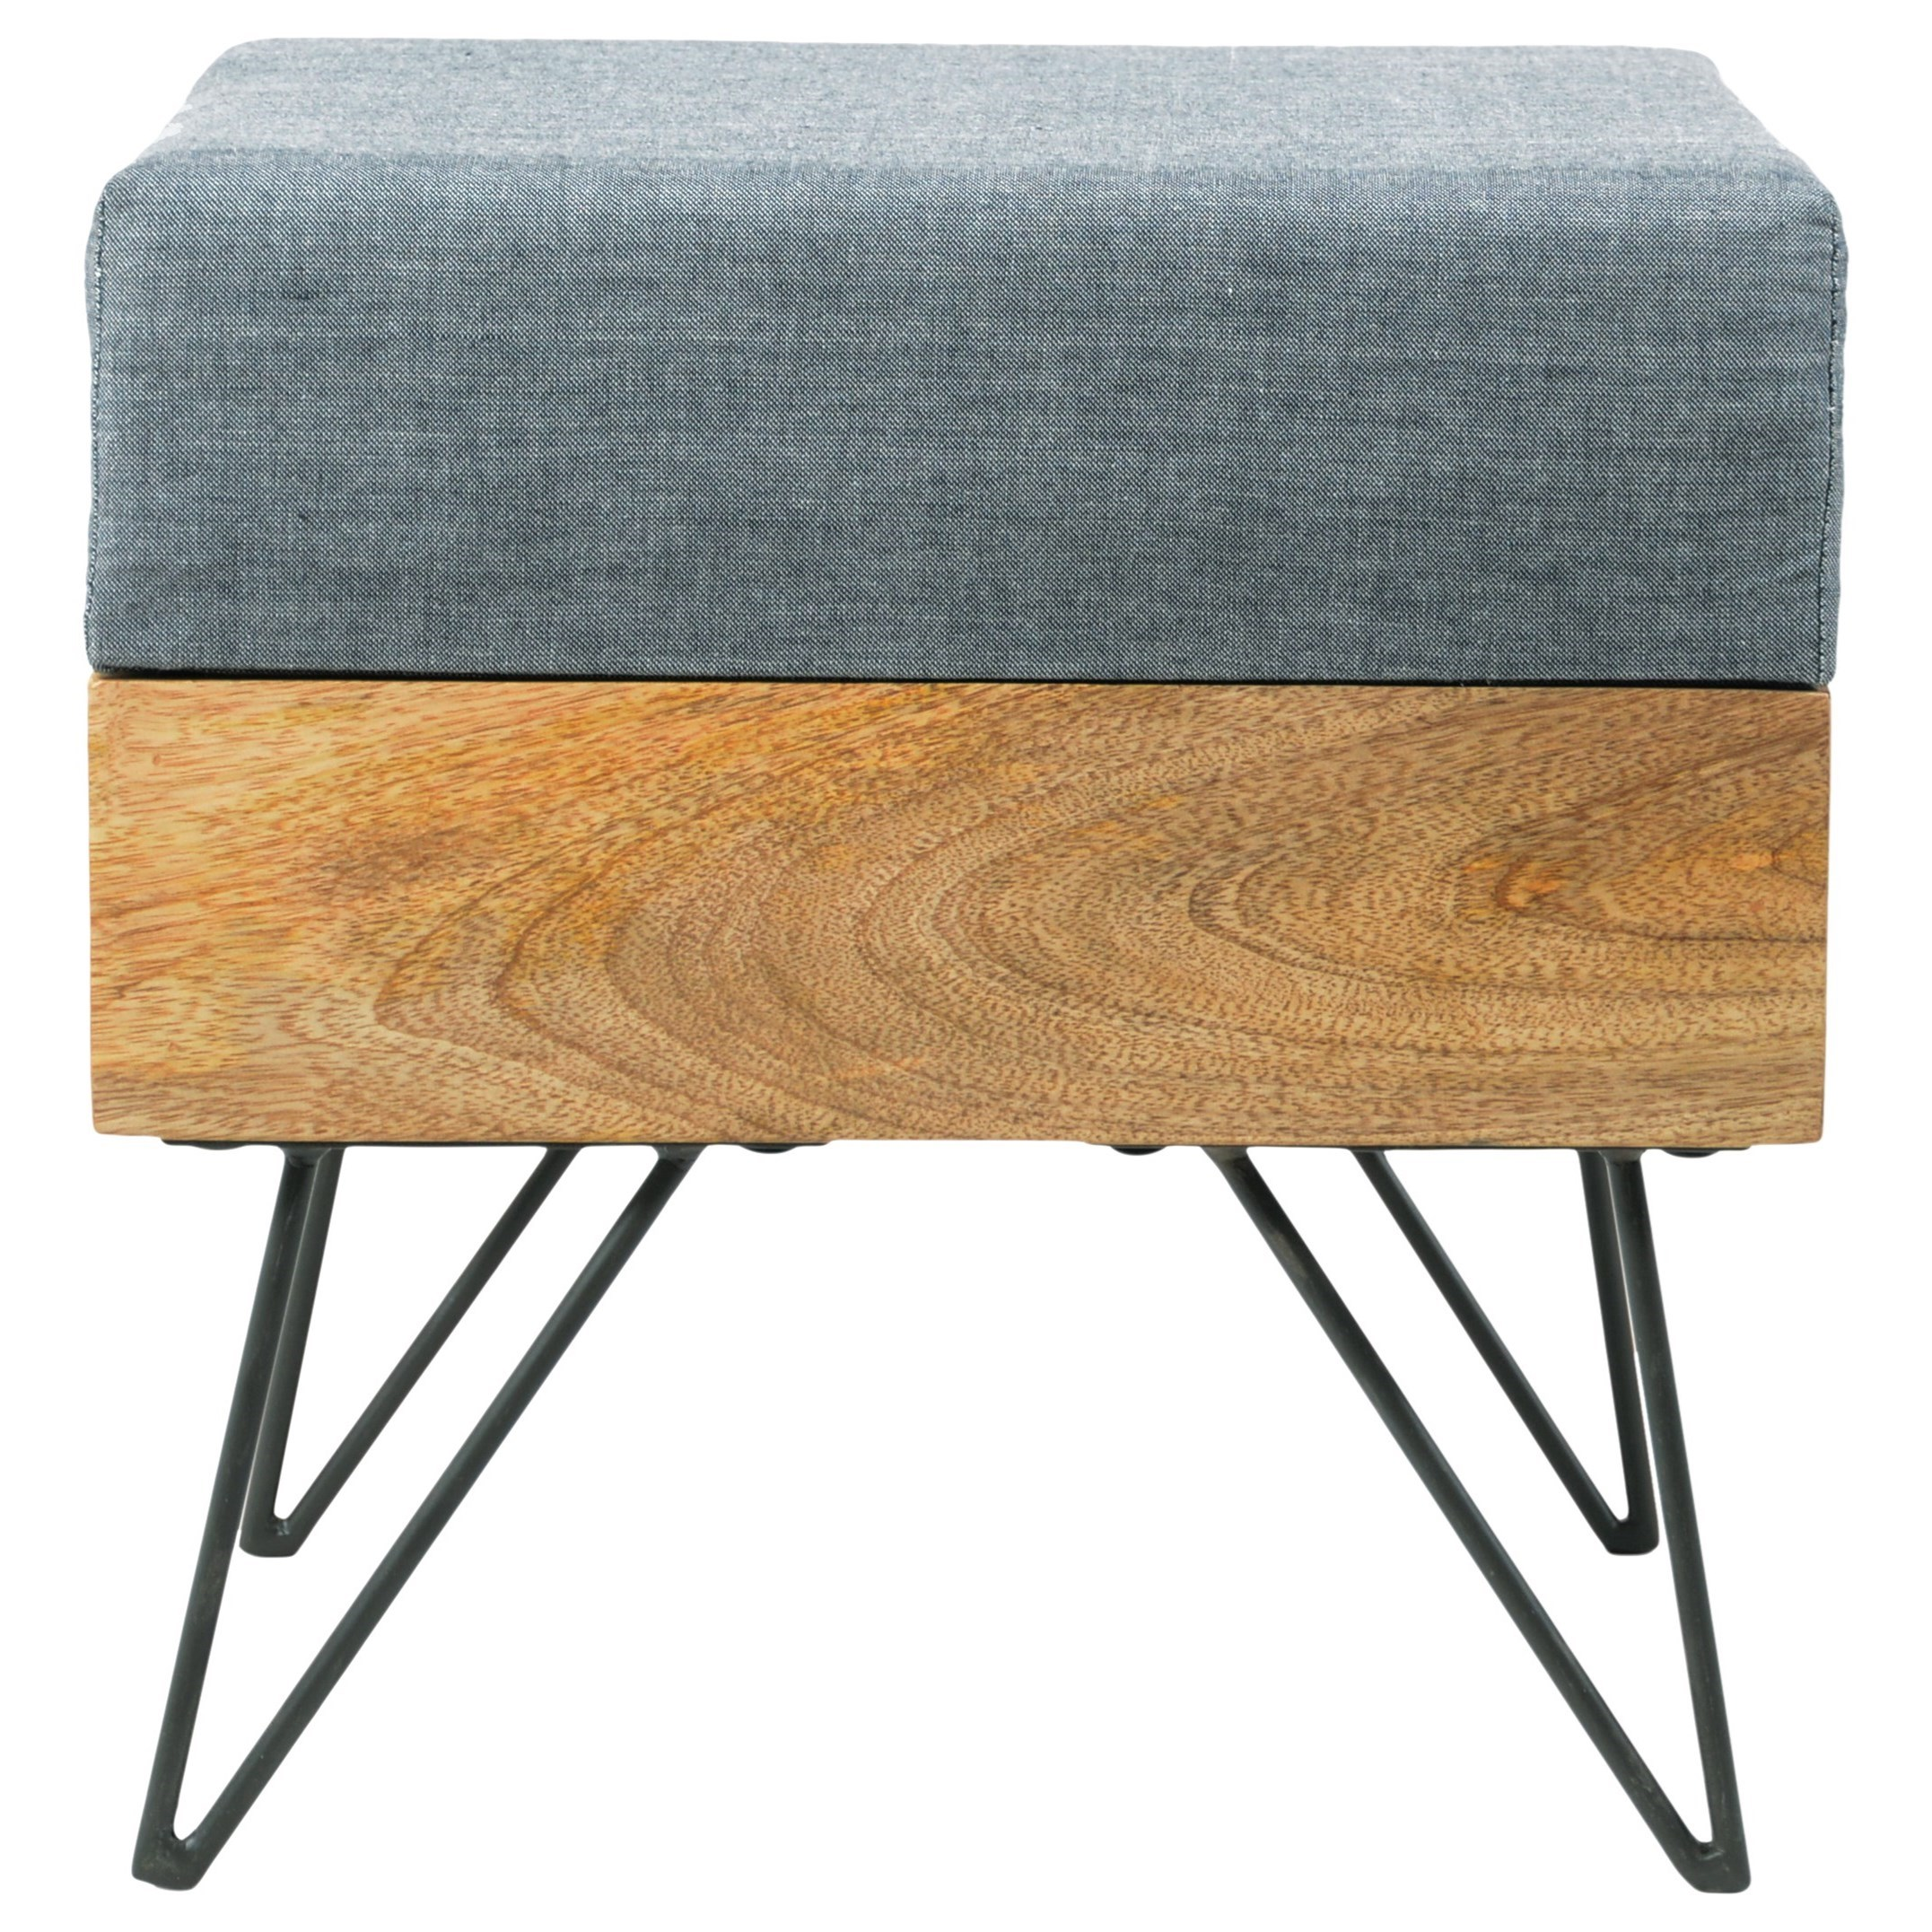 Pouf Ottoman by Moe's Home Collection at Stoney Creek Furniture